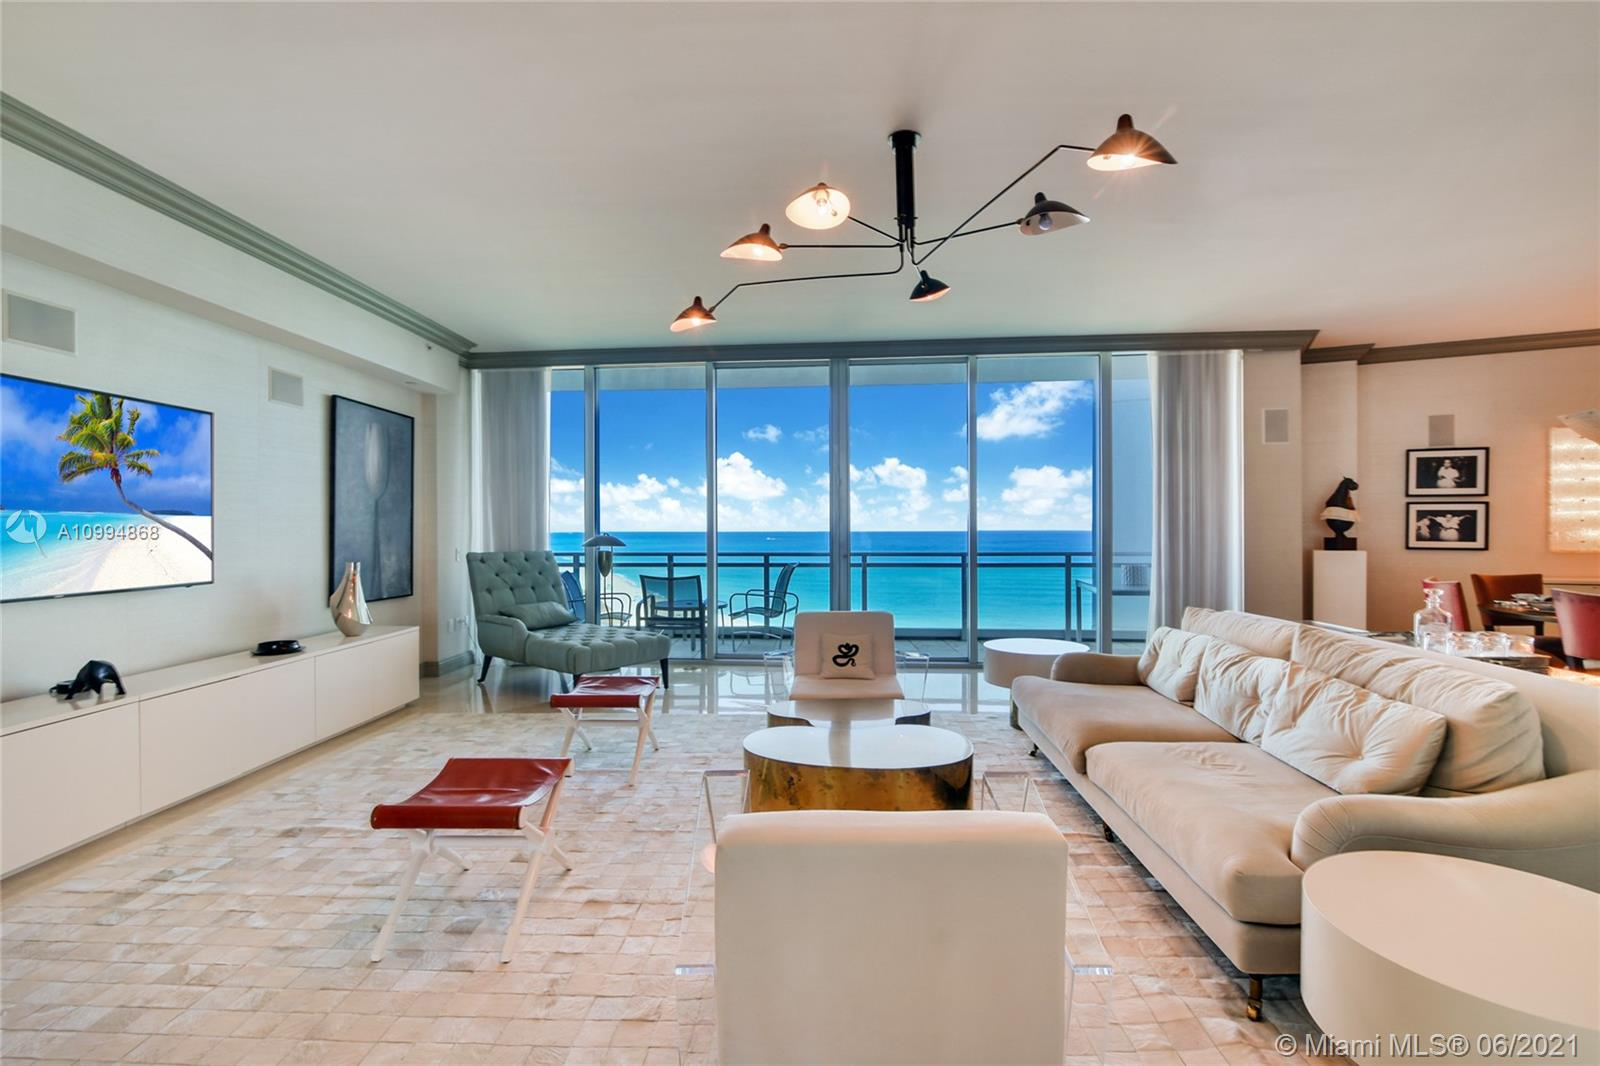 $500 K Price Reduction ! PANORAMIC DIRECT OCEAN, INTRACOASTAL & MIAMI SKYLINE VIEWS!  3 BEDROOMS /3.5 BATHS UNIT! THE MOST PRESTIGIUSE ONE BAL HARBOUR /RITZ CARLTON RESIDENCES WITH A PRIVATE FOYER ENTRY. 3 TERRACES WITH SUNRISE & SUNSETS VIEWS ,OPEN FLOOR PLAN FOR THE ENTERTAINMENT ,10 FEET CEILING ,MASTER SUITE W/ SITTING AREA,  WALKING HIS&HERS CLOSETS . GOURMET KITCHEN W/GAS STOVE ,WOLF APPLIANCES ,MIELE BUILT IN COFFEE MACHINE LAUNDRY ROOM,ASSIGNED PARKING,STORAGE ,5 STAR BUILDING AMENITIES FULL BEACH & POOL SERVICES GYM ,STEAM ROOM THEATER SOCIAL ROOM RESIDENTIAL CONCIERGE SERVICES,24 HOURS SECURITY VALET. ACCESS TO THE WORLD-CLASS RITZ CARLTON RESORT AMENITIES, FINE DINING RESTAURANT & SPA.